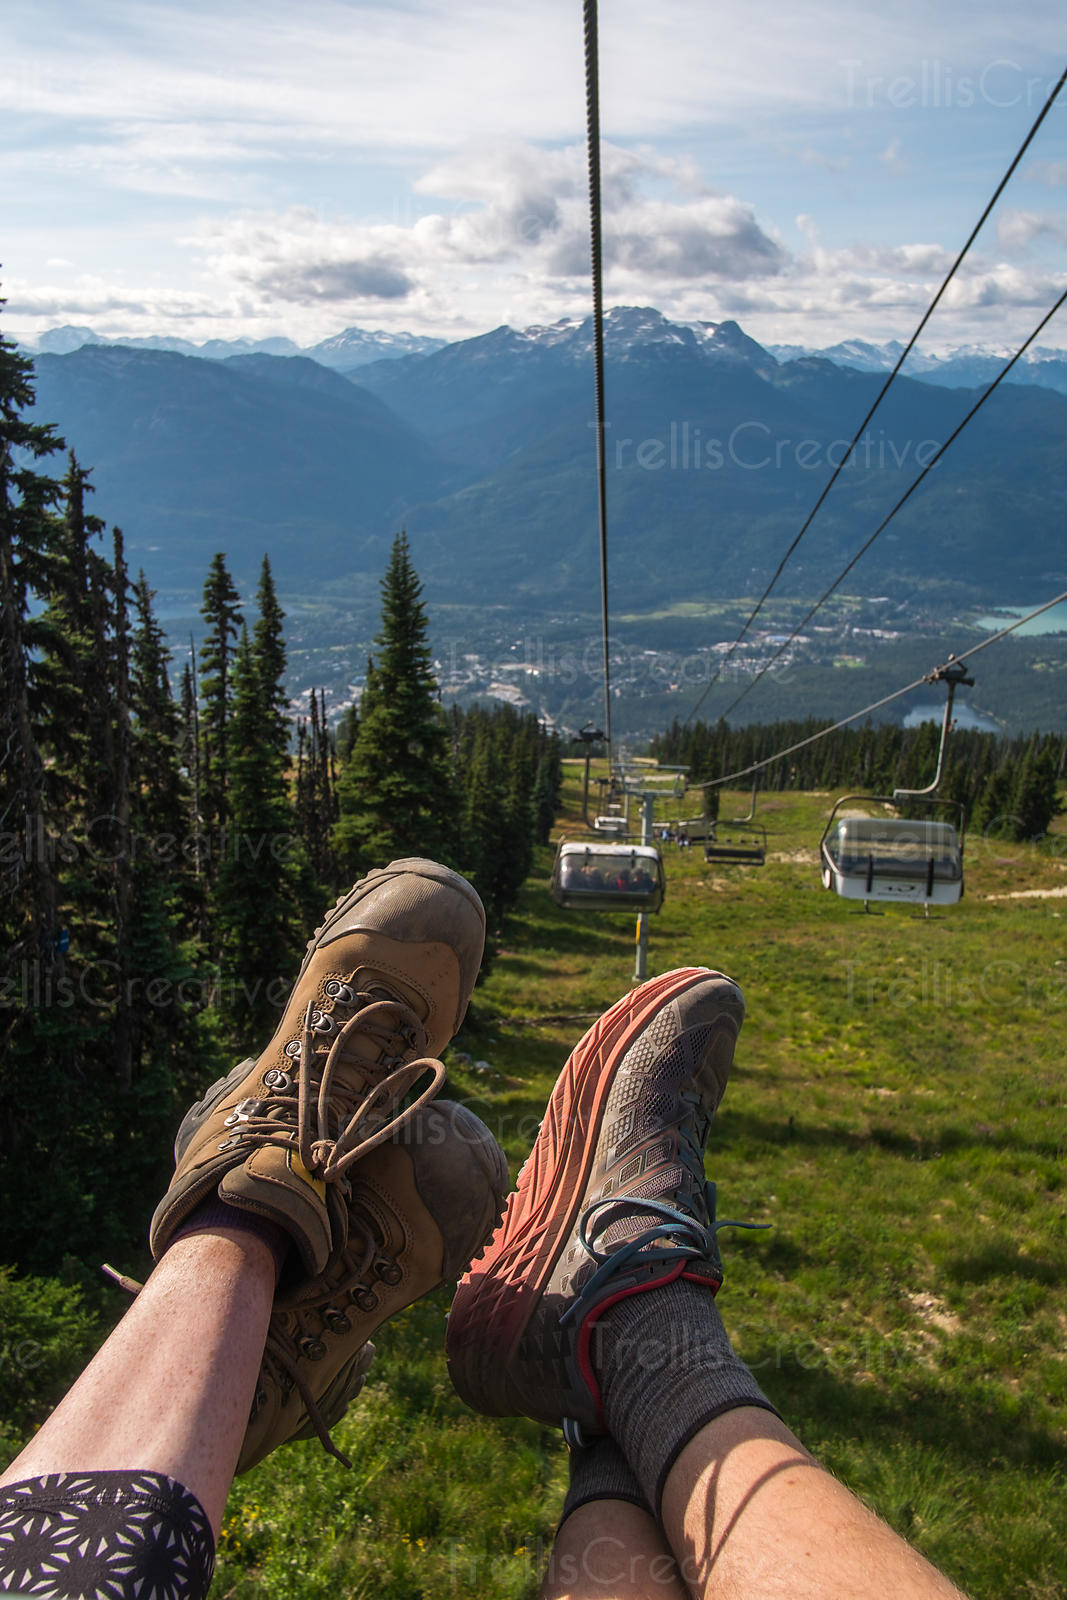 Two people riding chair lift down Blackcomb Mountain, Whistler, Canada.